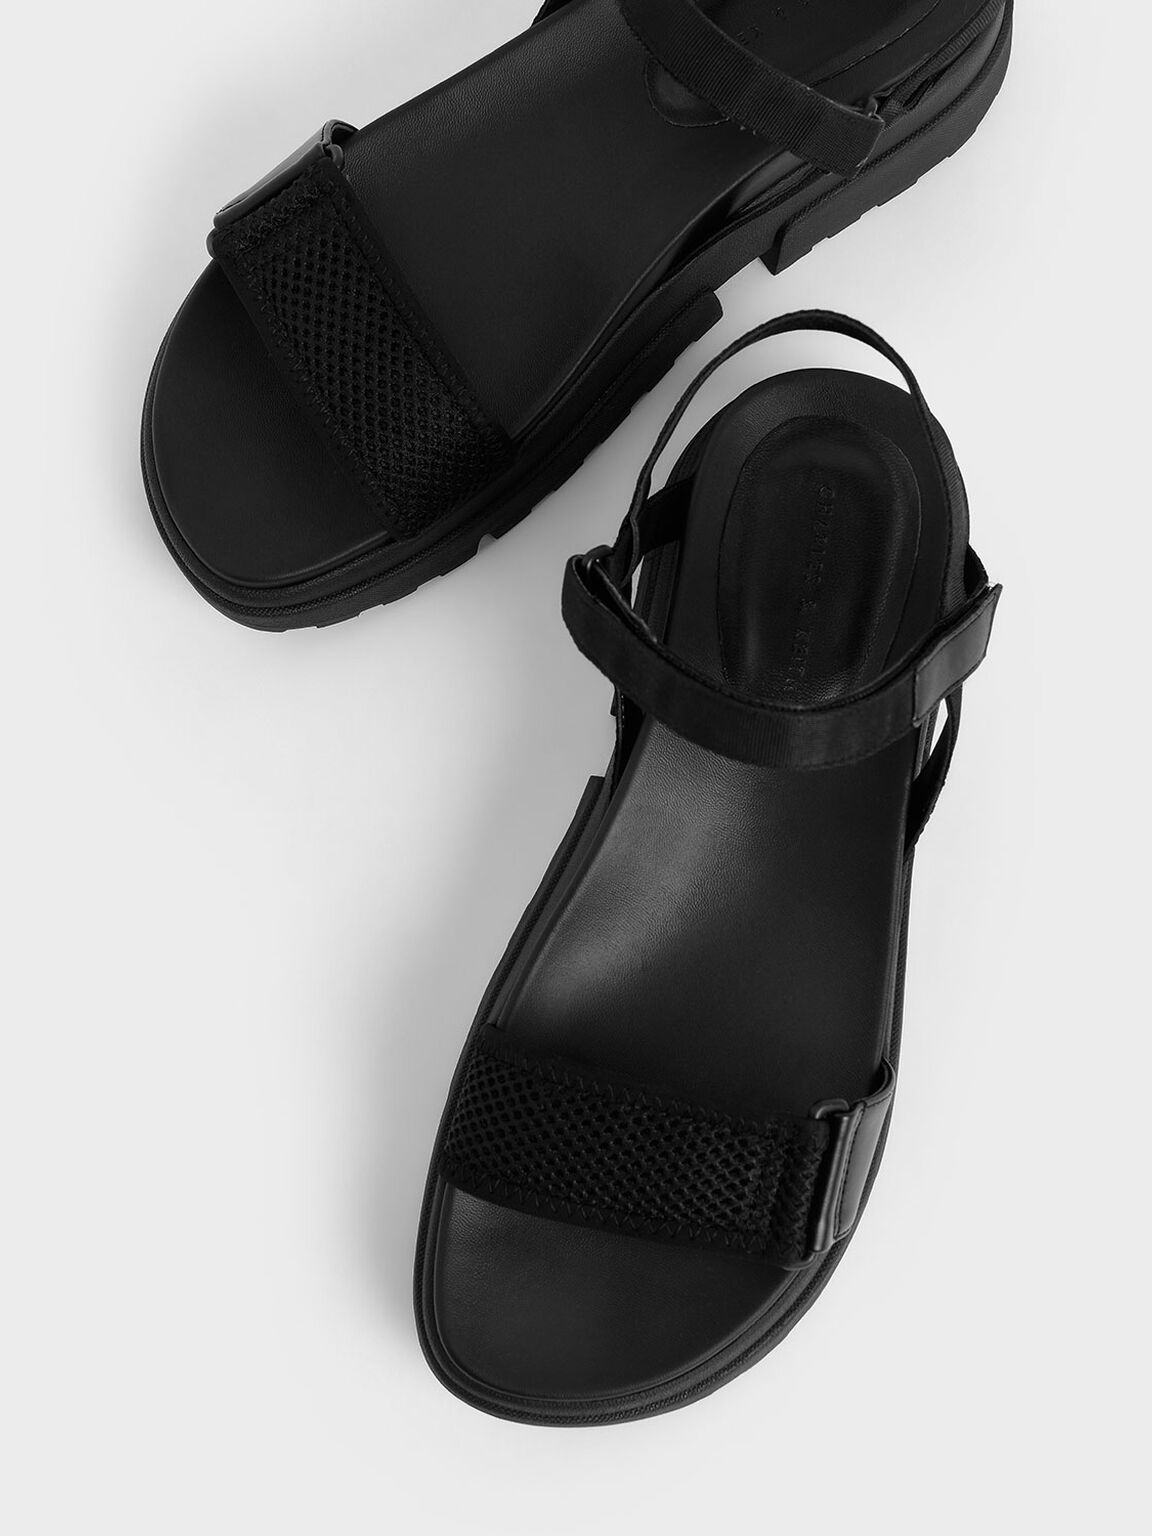 Mesh & Grosgrain Flatform Sandals, Black, hi-res